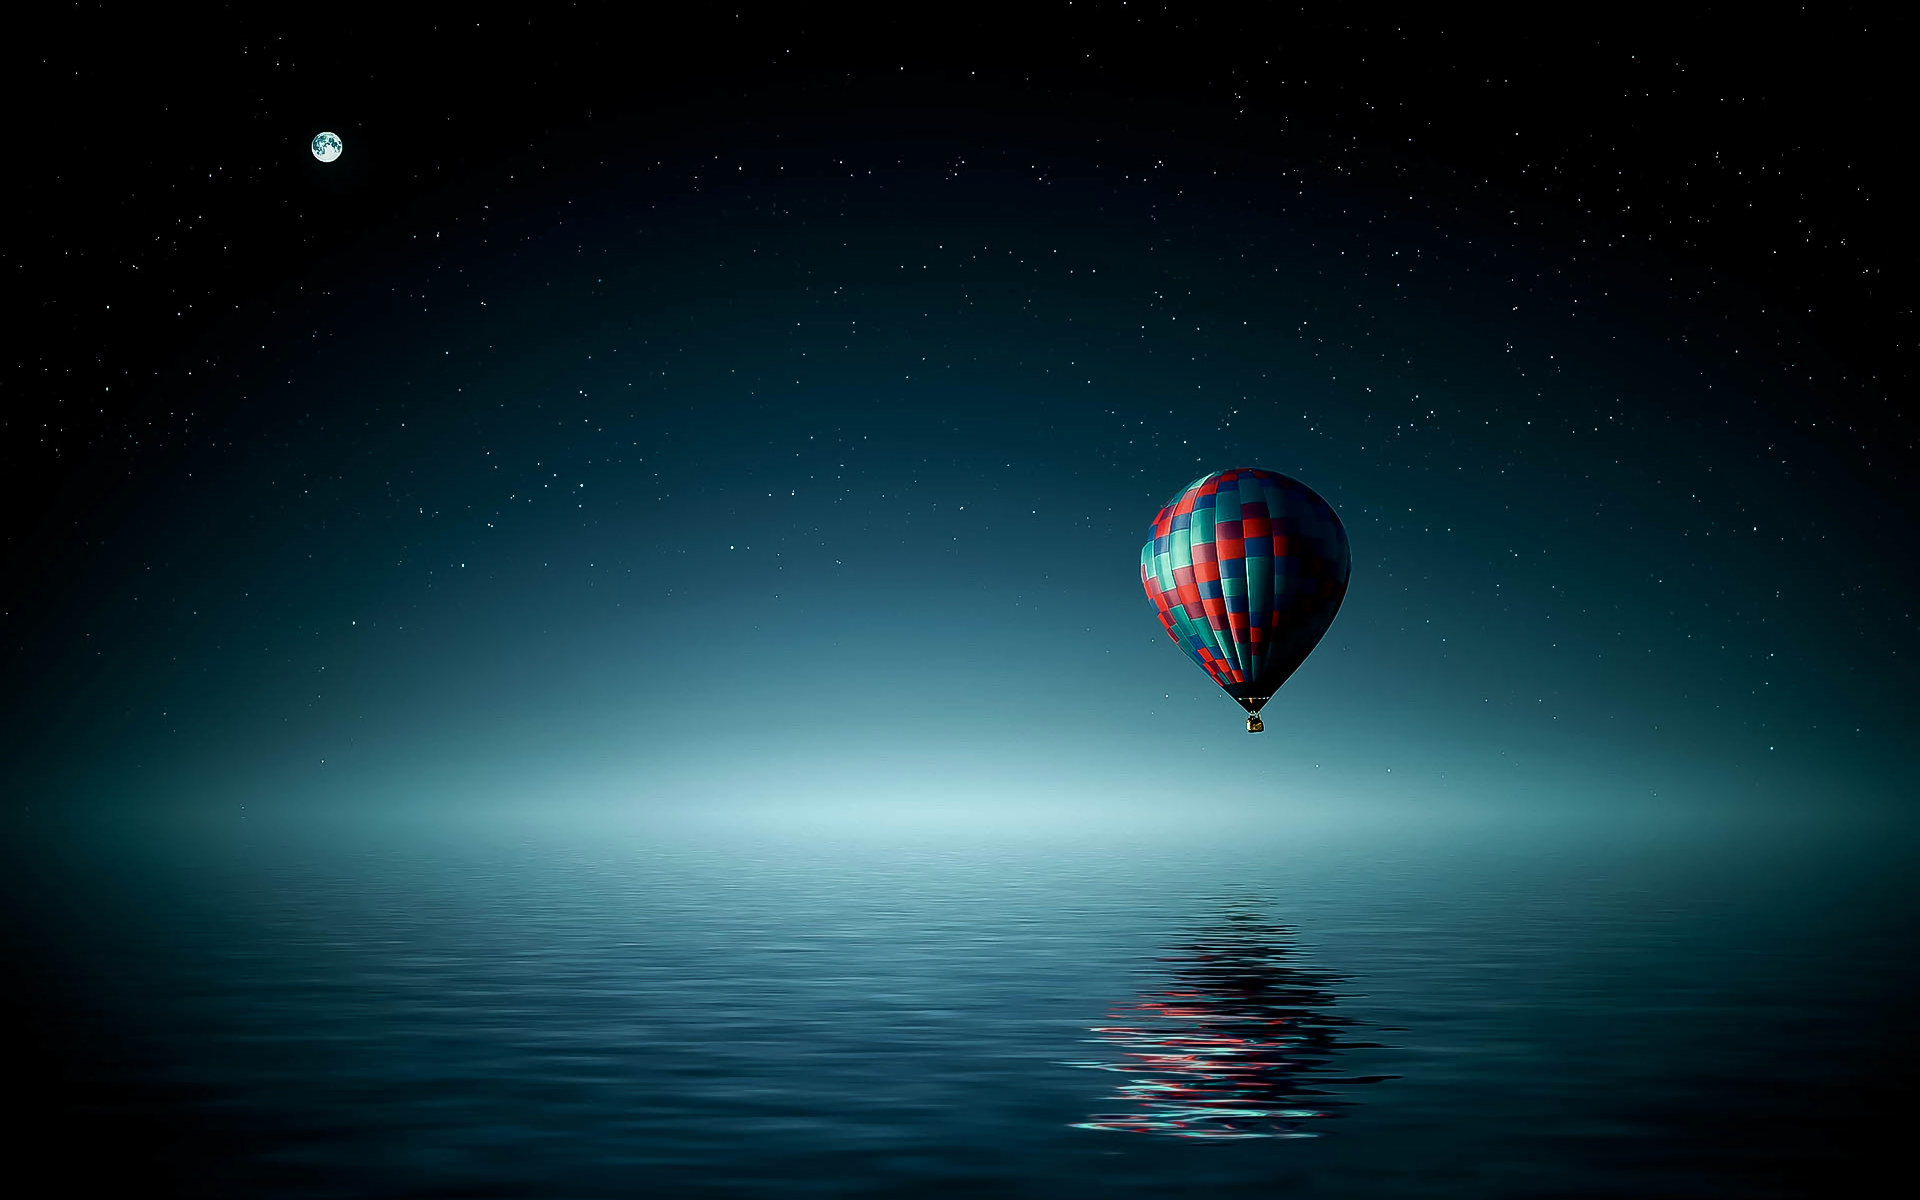 Vehicles - Hot Air Balloon  Night Sky Ocean Vehicle Moon Stars Artistic Wallpaper